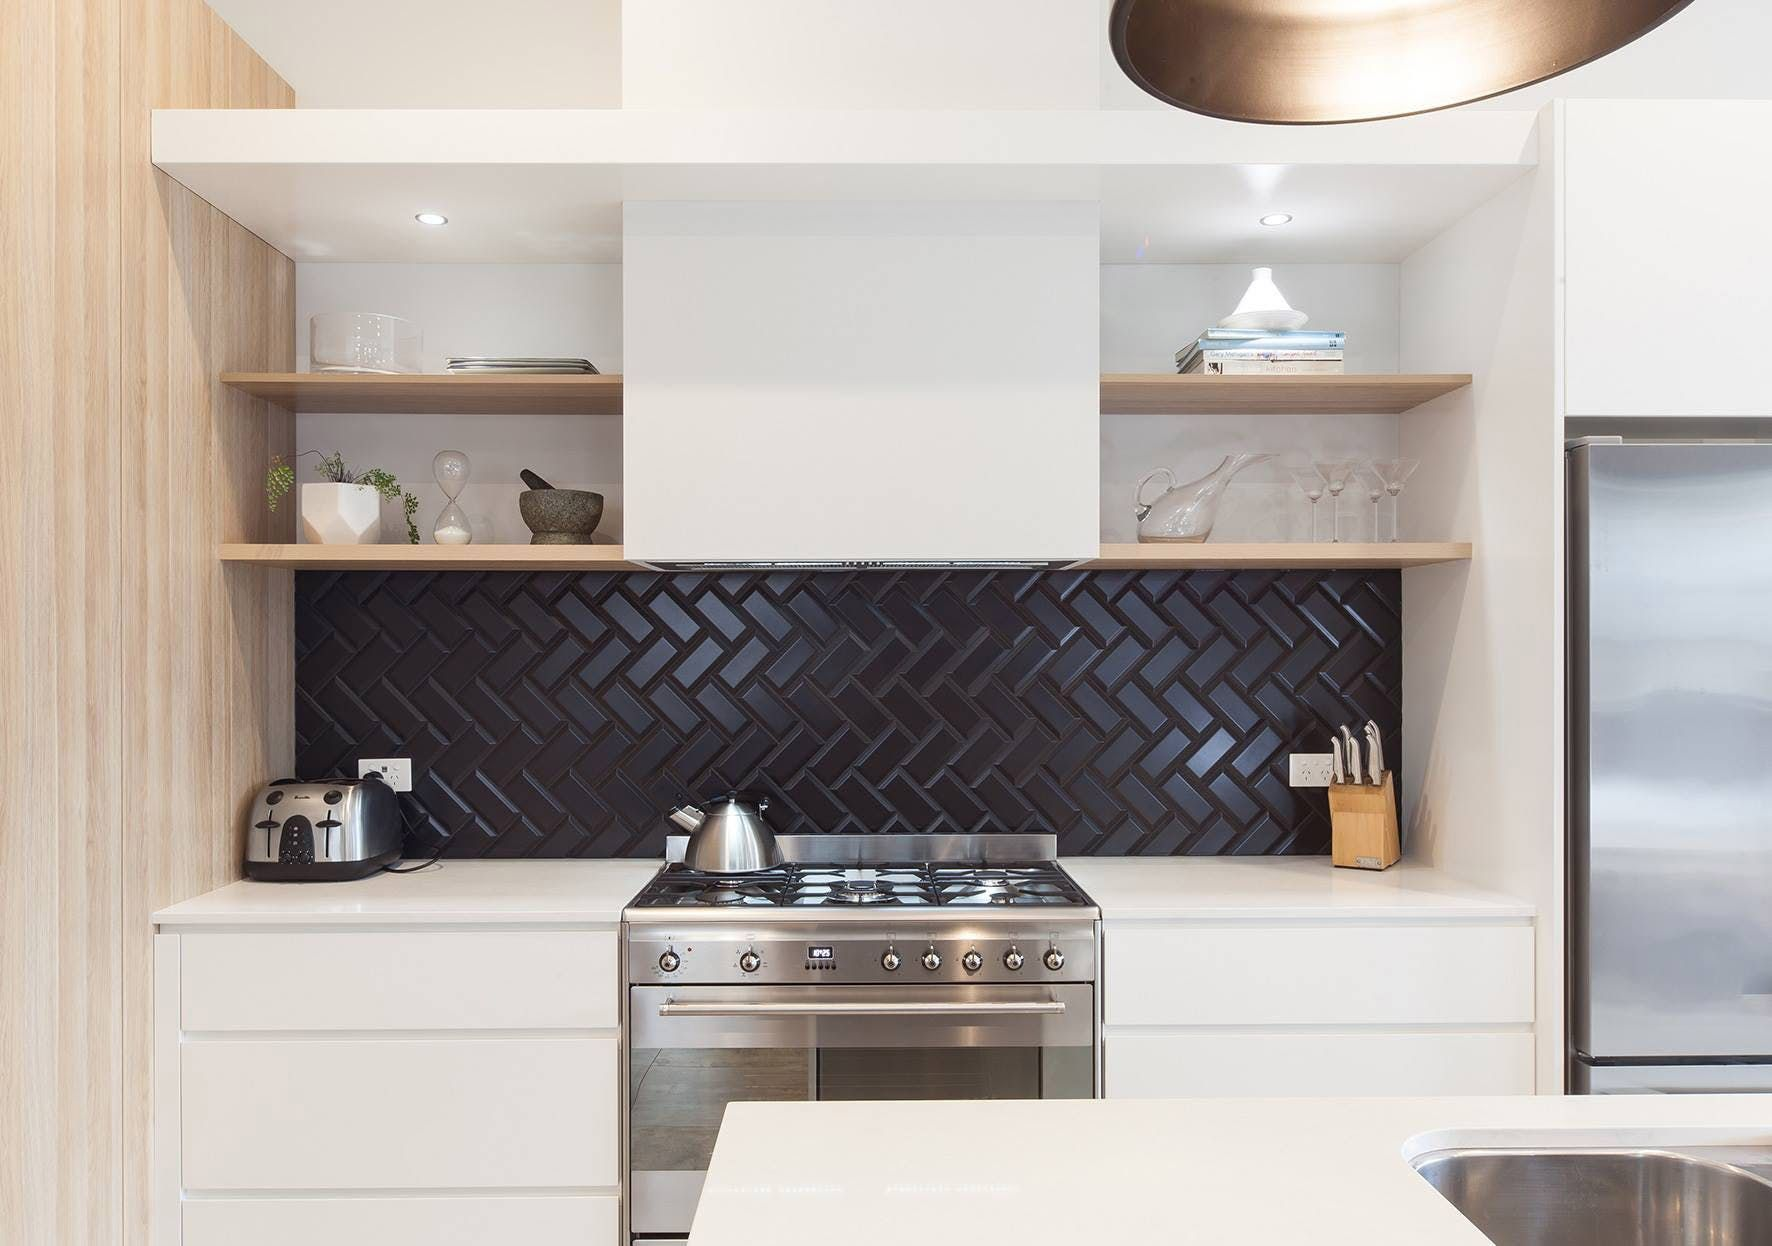 10 Black Kitchen Backsplash Ideas 2020 Break The Custom